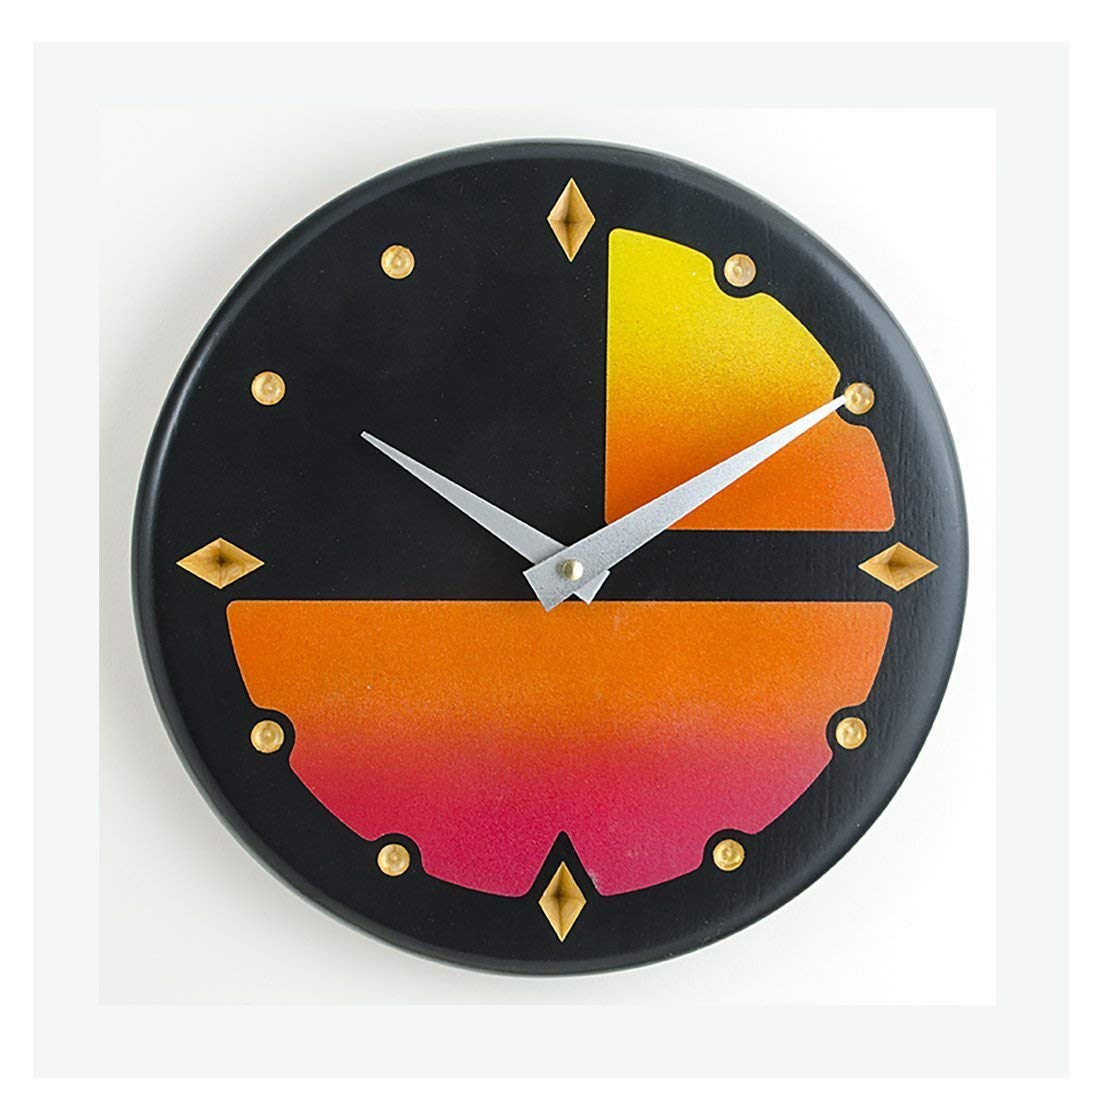 Contemporary 10 inch wall or kitchen clock. Solid maple wood, painted black, with bright ombre color block design.